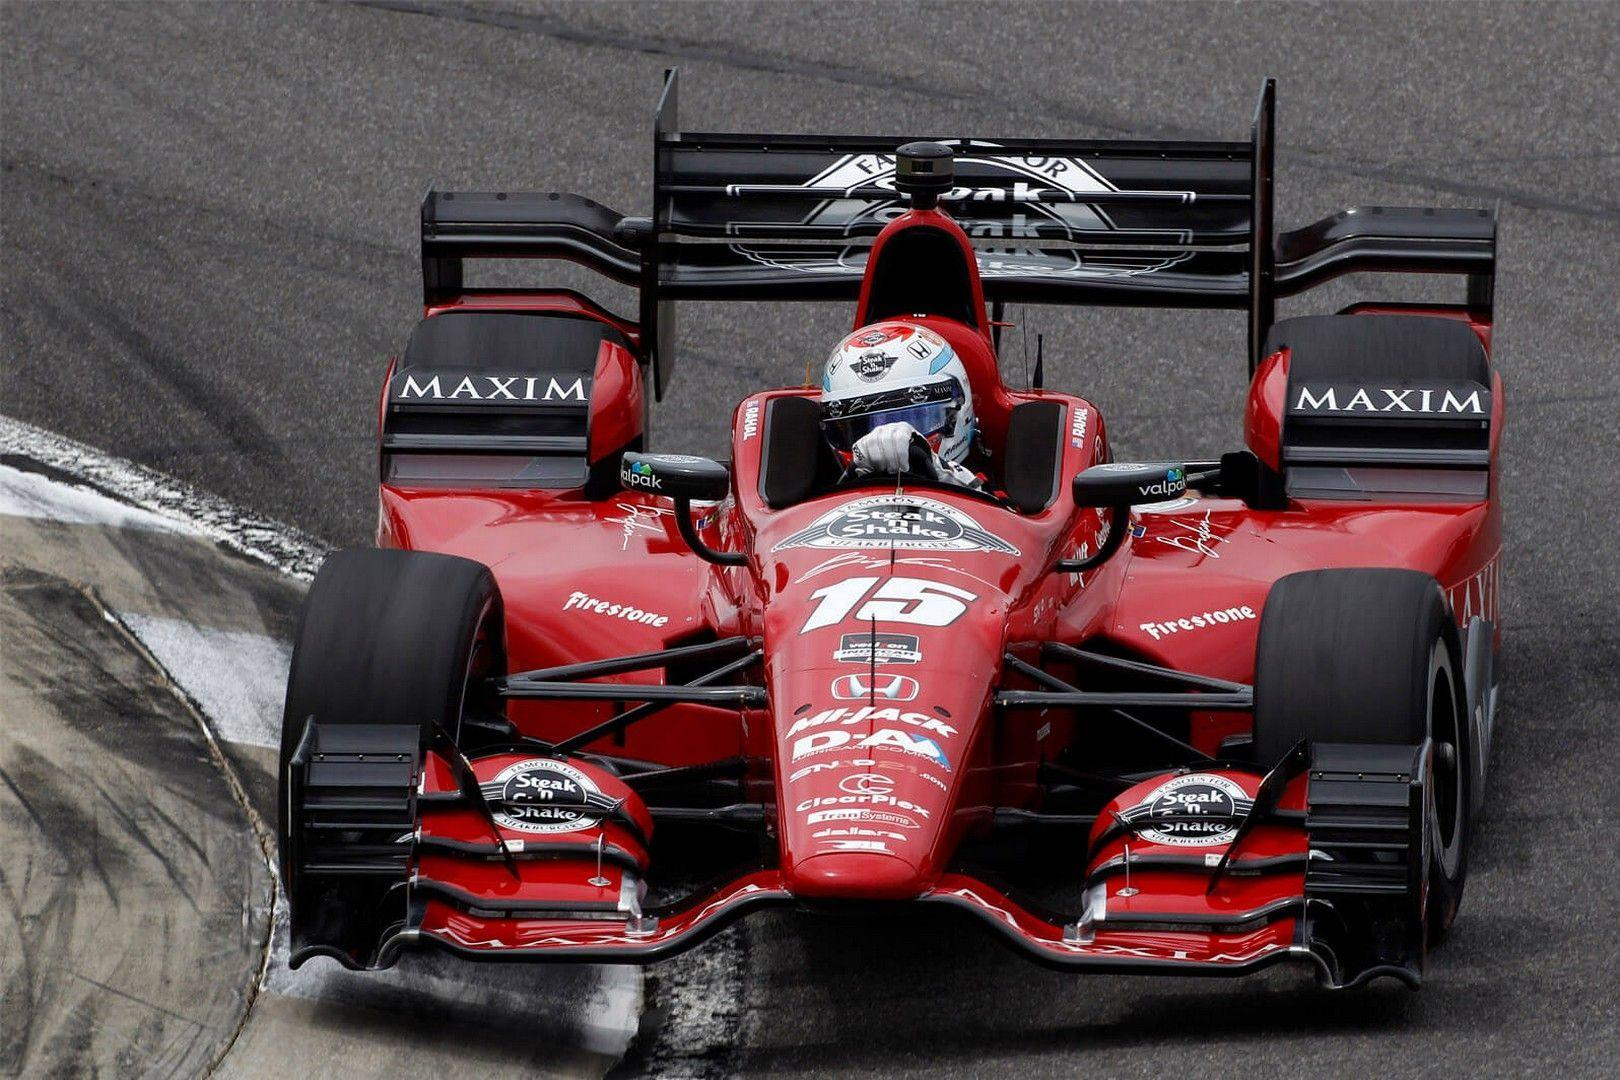 indycar wallpapers | IndyCar wallpaper | Pinterest | Wallpaper